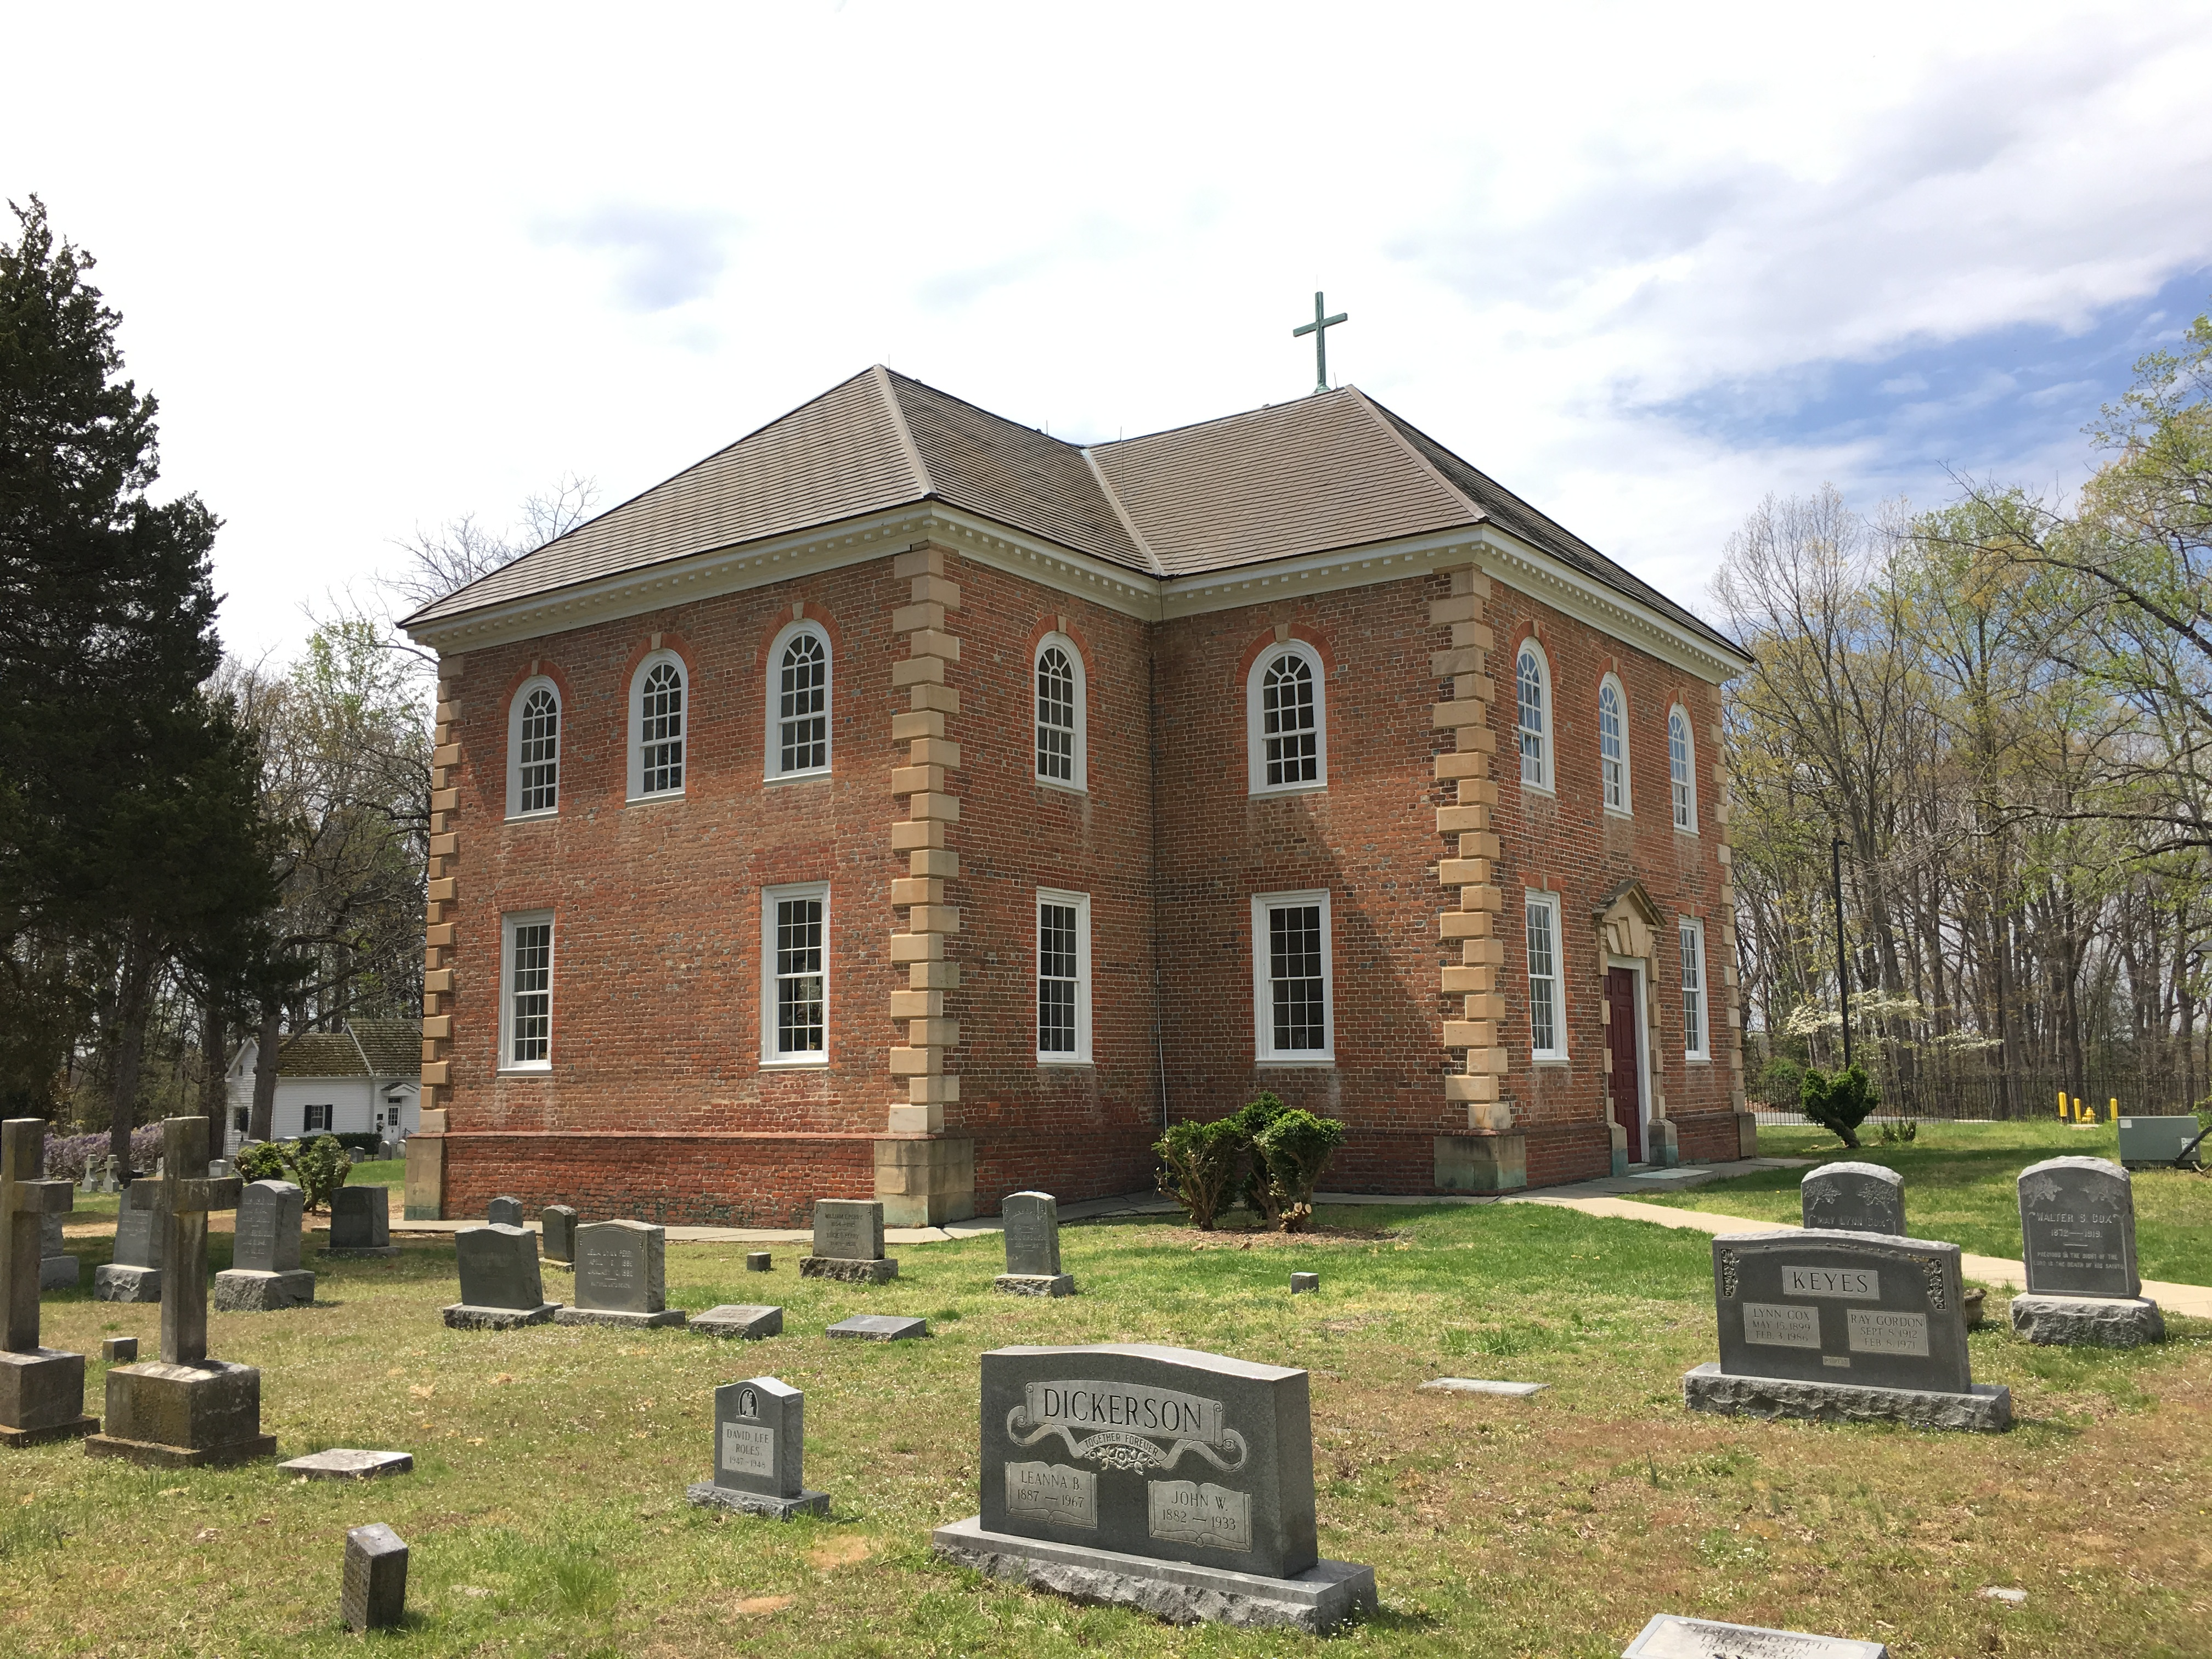 Aquia Church and cemetery, side view.By Justin.A.Wilcox - Own work, CC BY-SA 4.0, https://commons.wikimedia.org/w/index.php?curid=48193969.